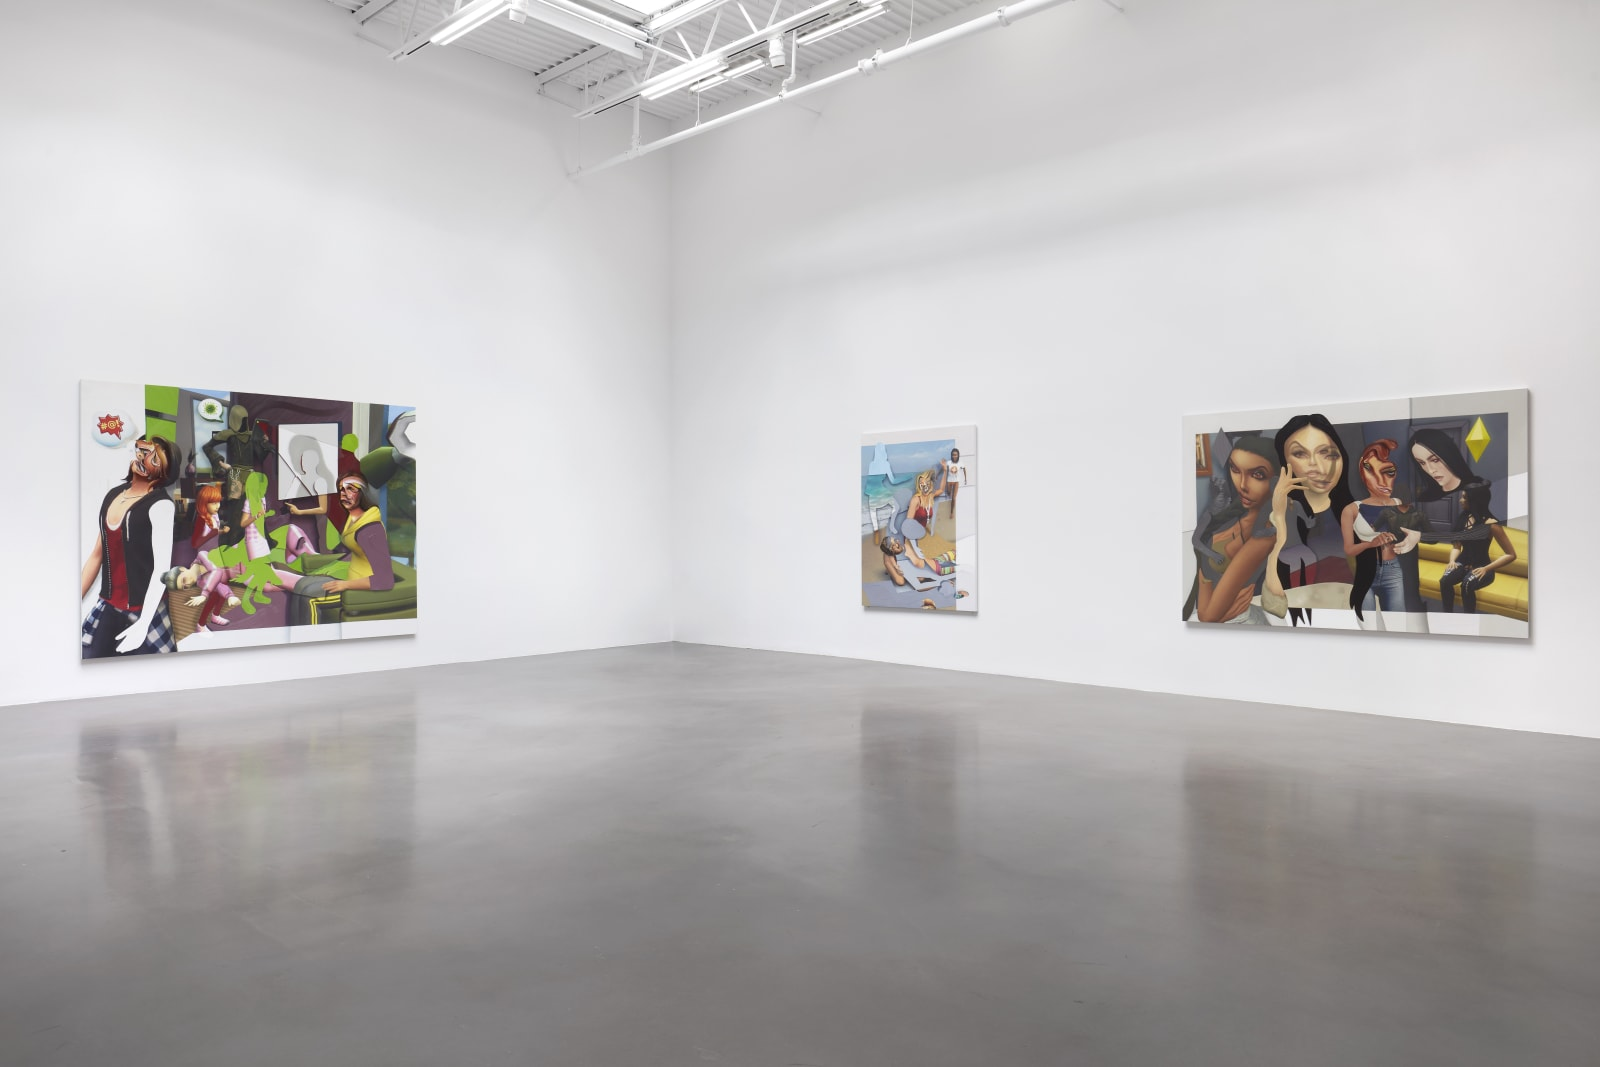 Pieter Schoolwerth, Shifted Sims, 2020 Petzel Gallery, New York